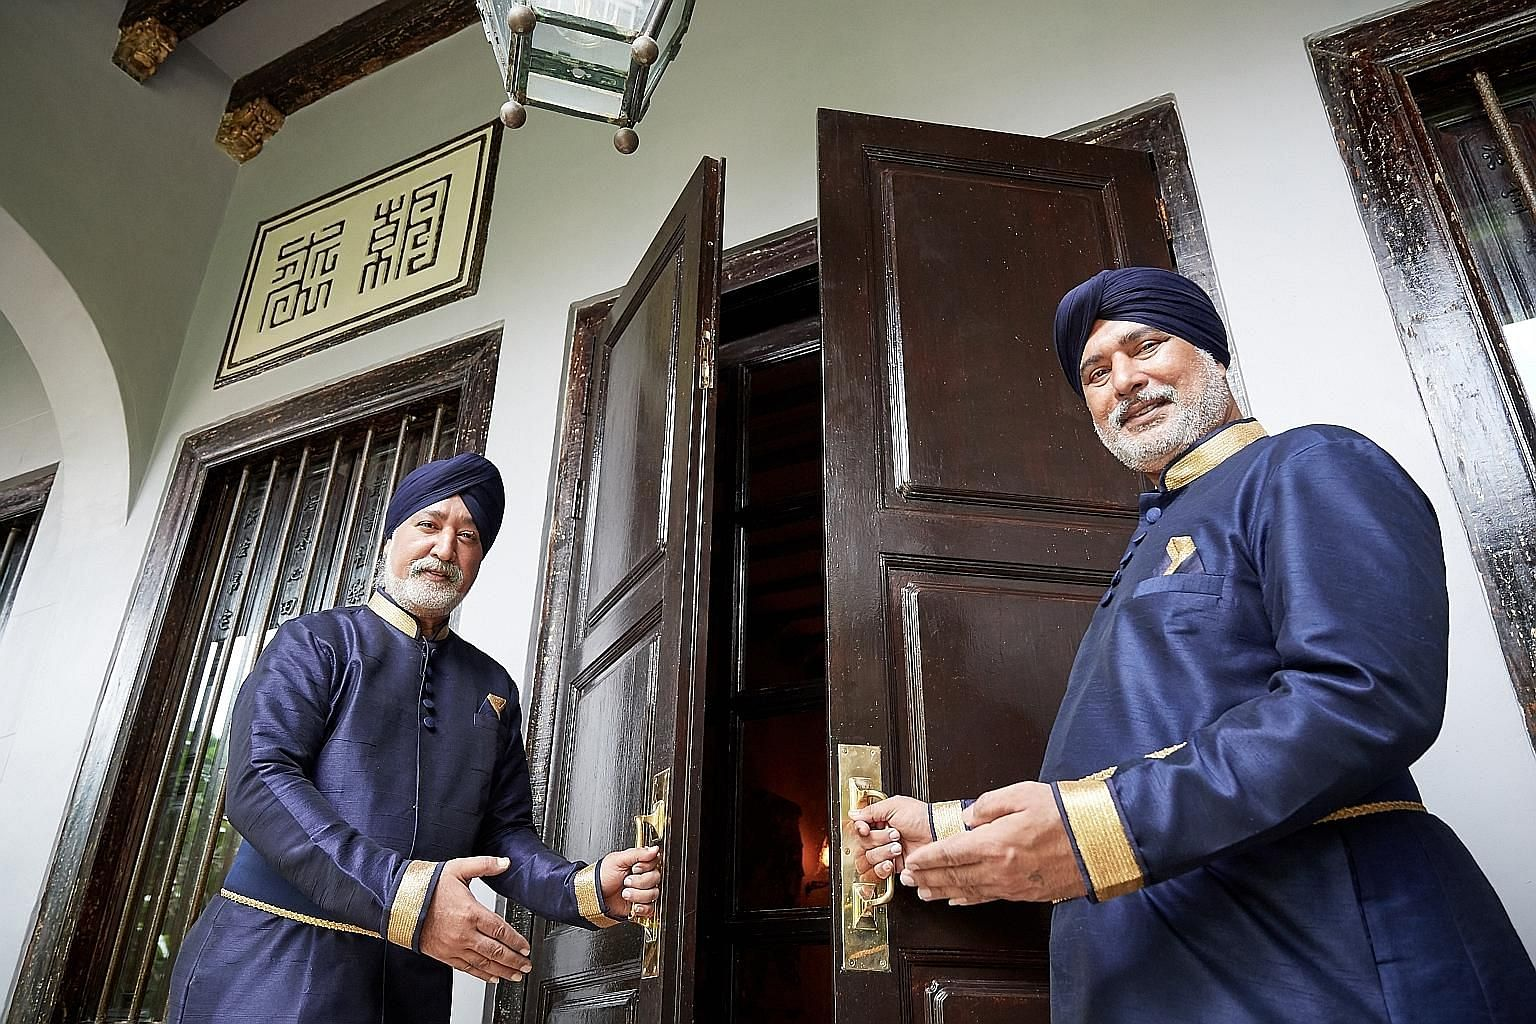 Brothers Swaran Singh (left) and Sarjit Singh were doormen at Raffles Hotel for 26 years.